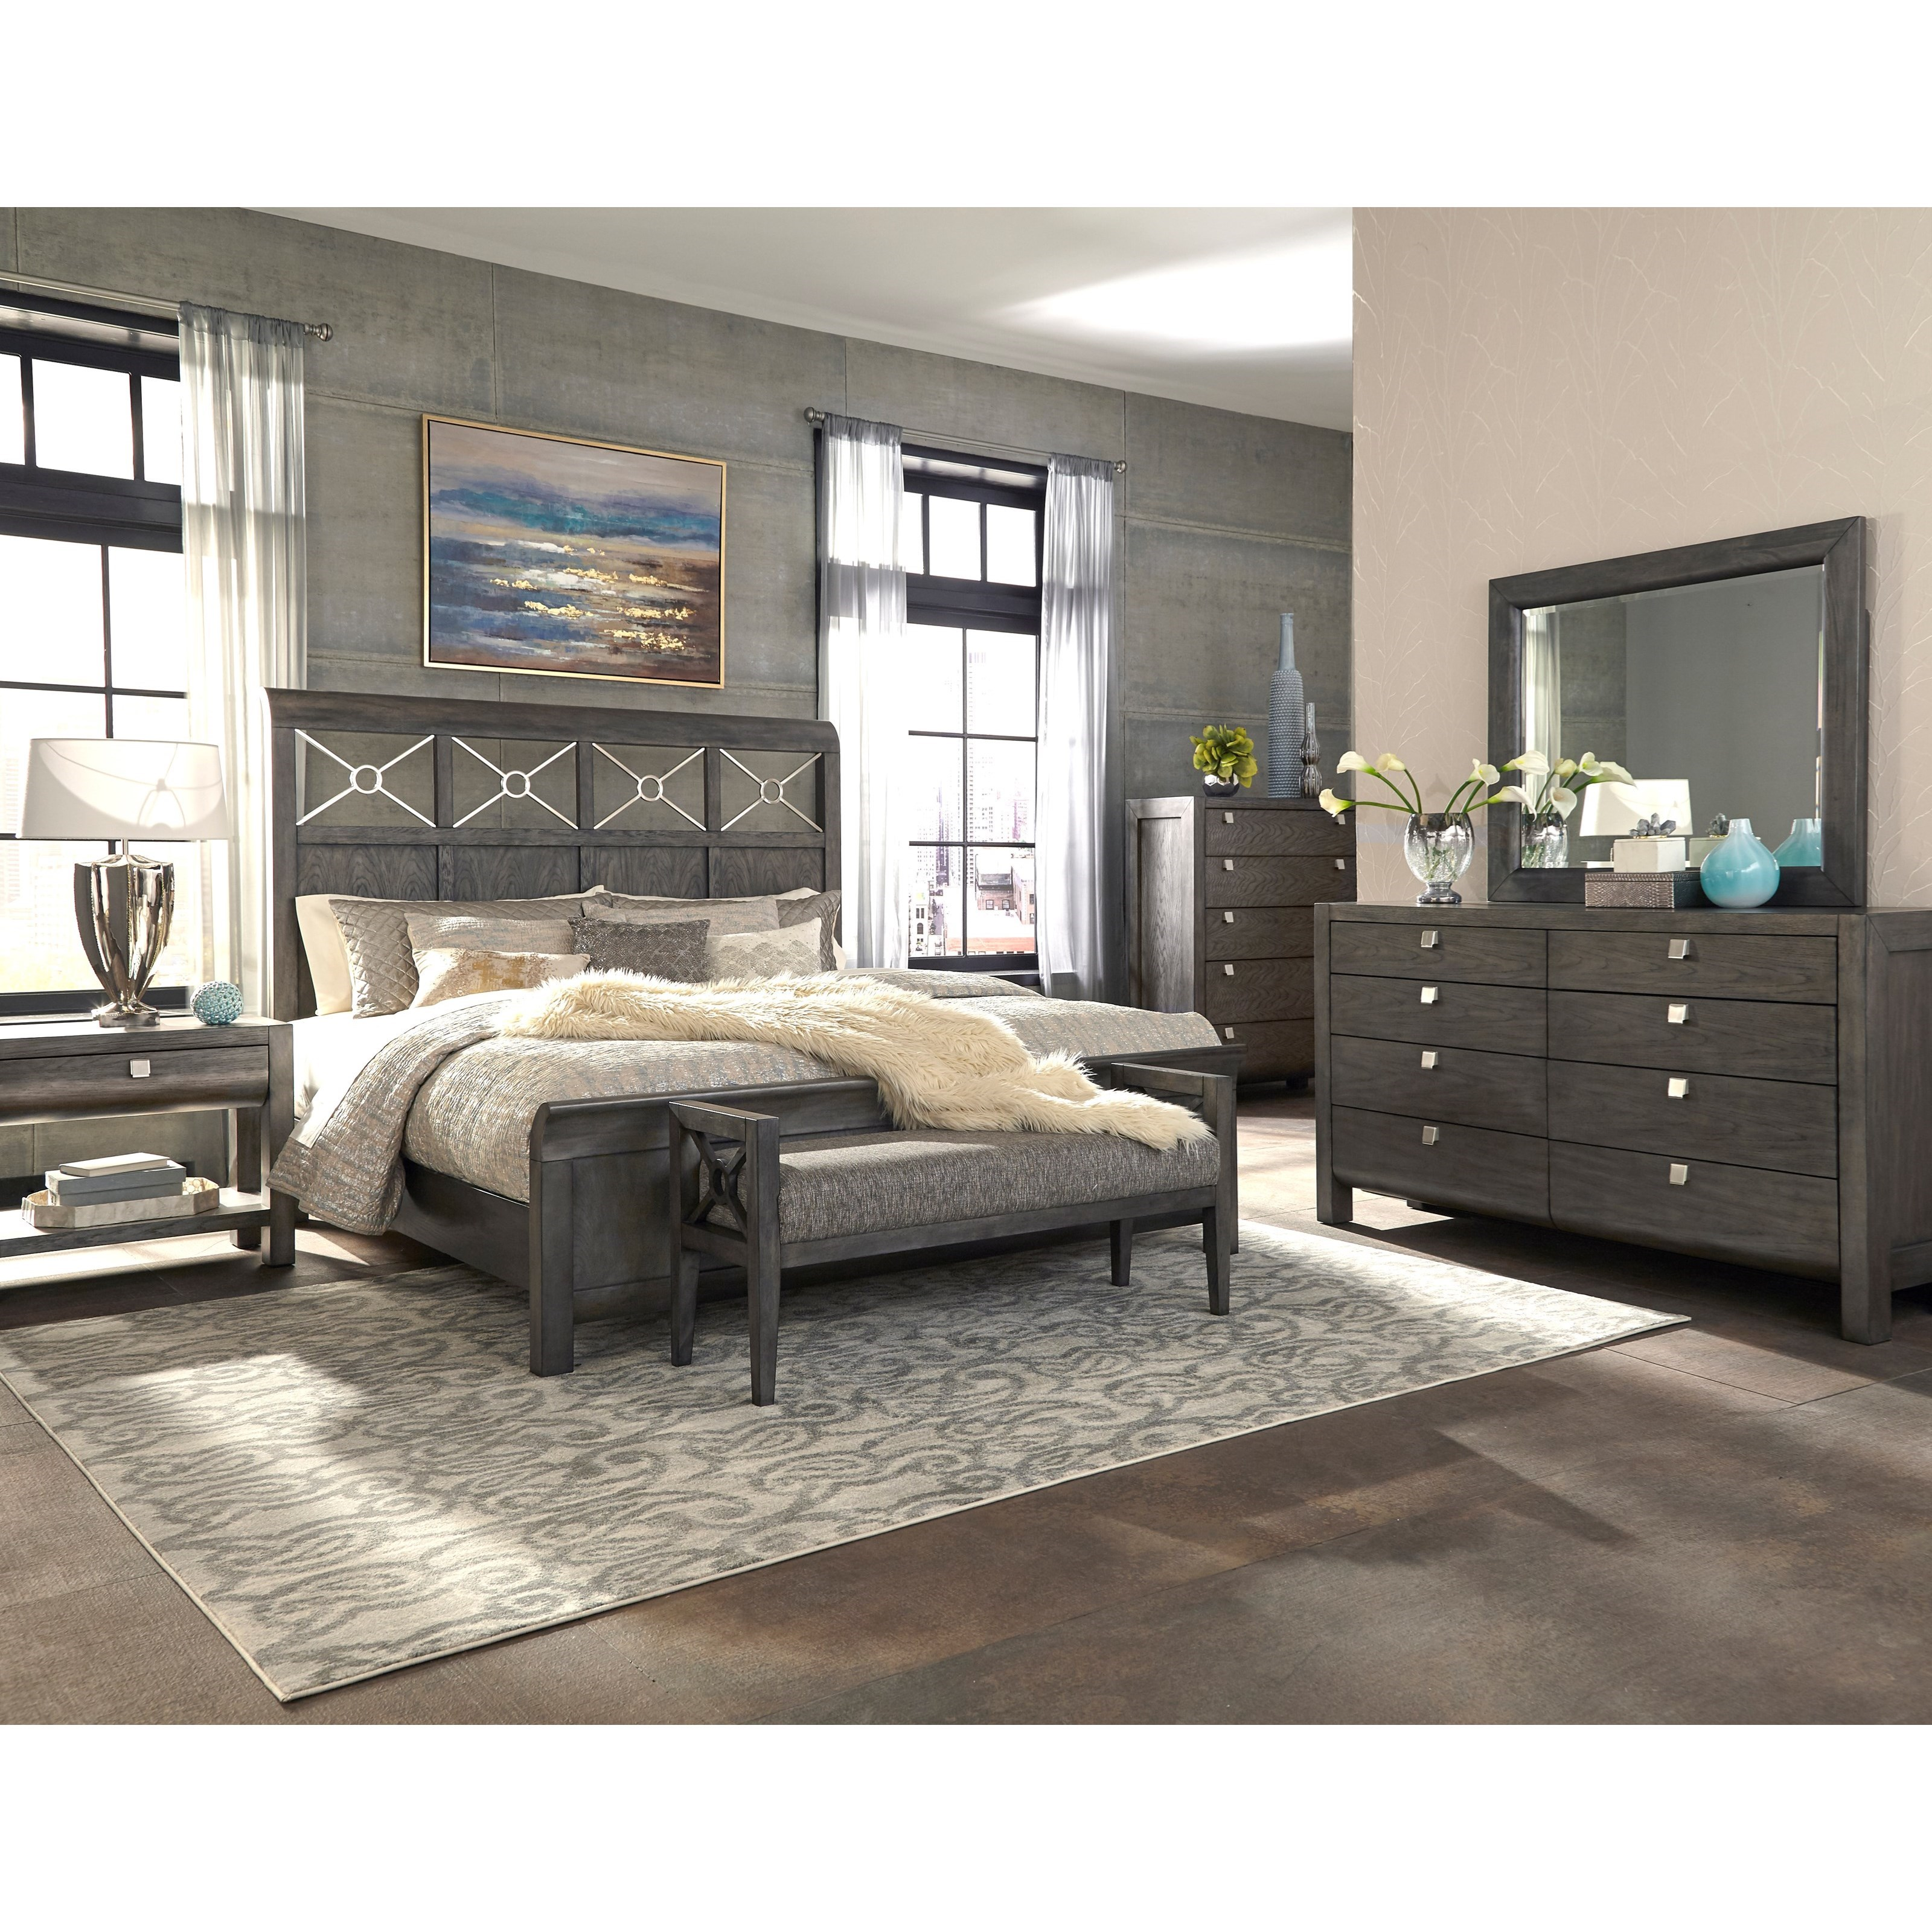 Trisha Yearwood Home Collection By Klaussner Music City